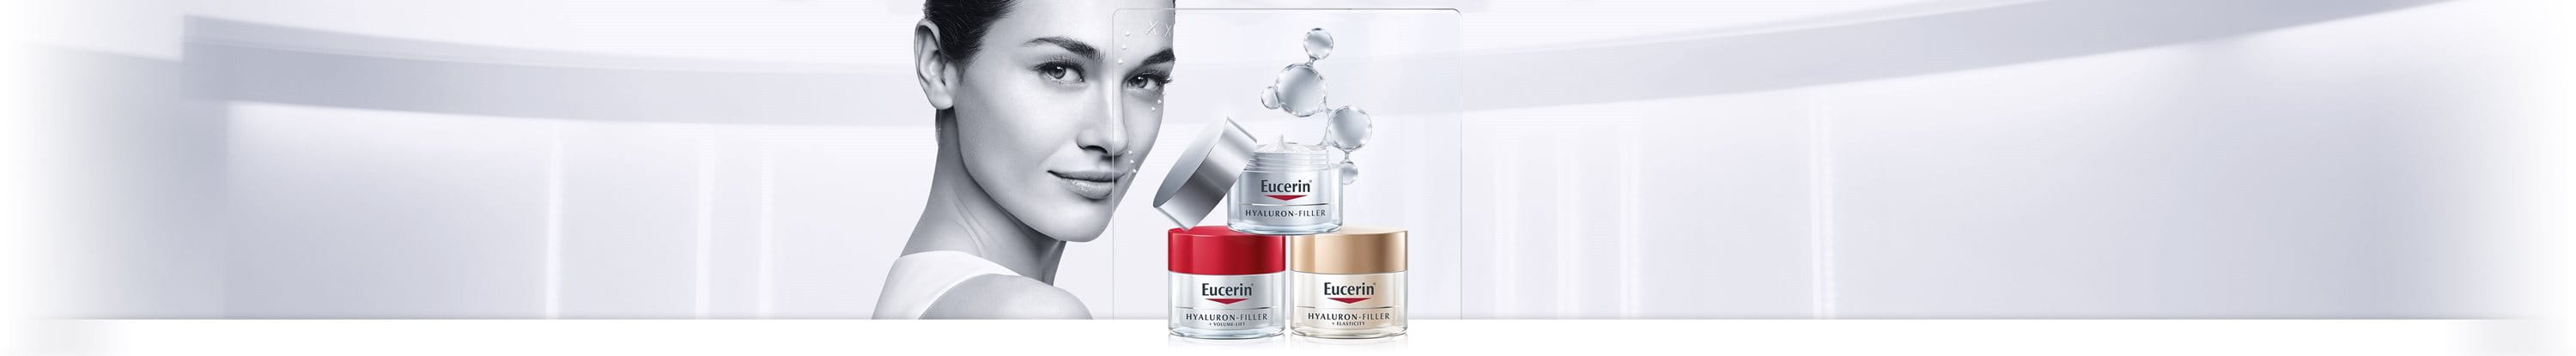 Anti-aging skincare solutions from Eucerin